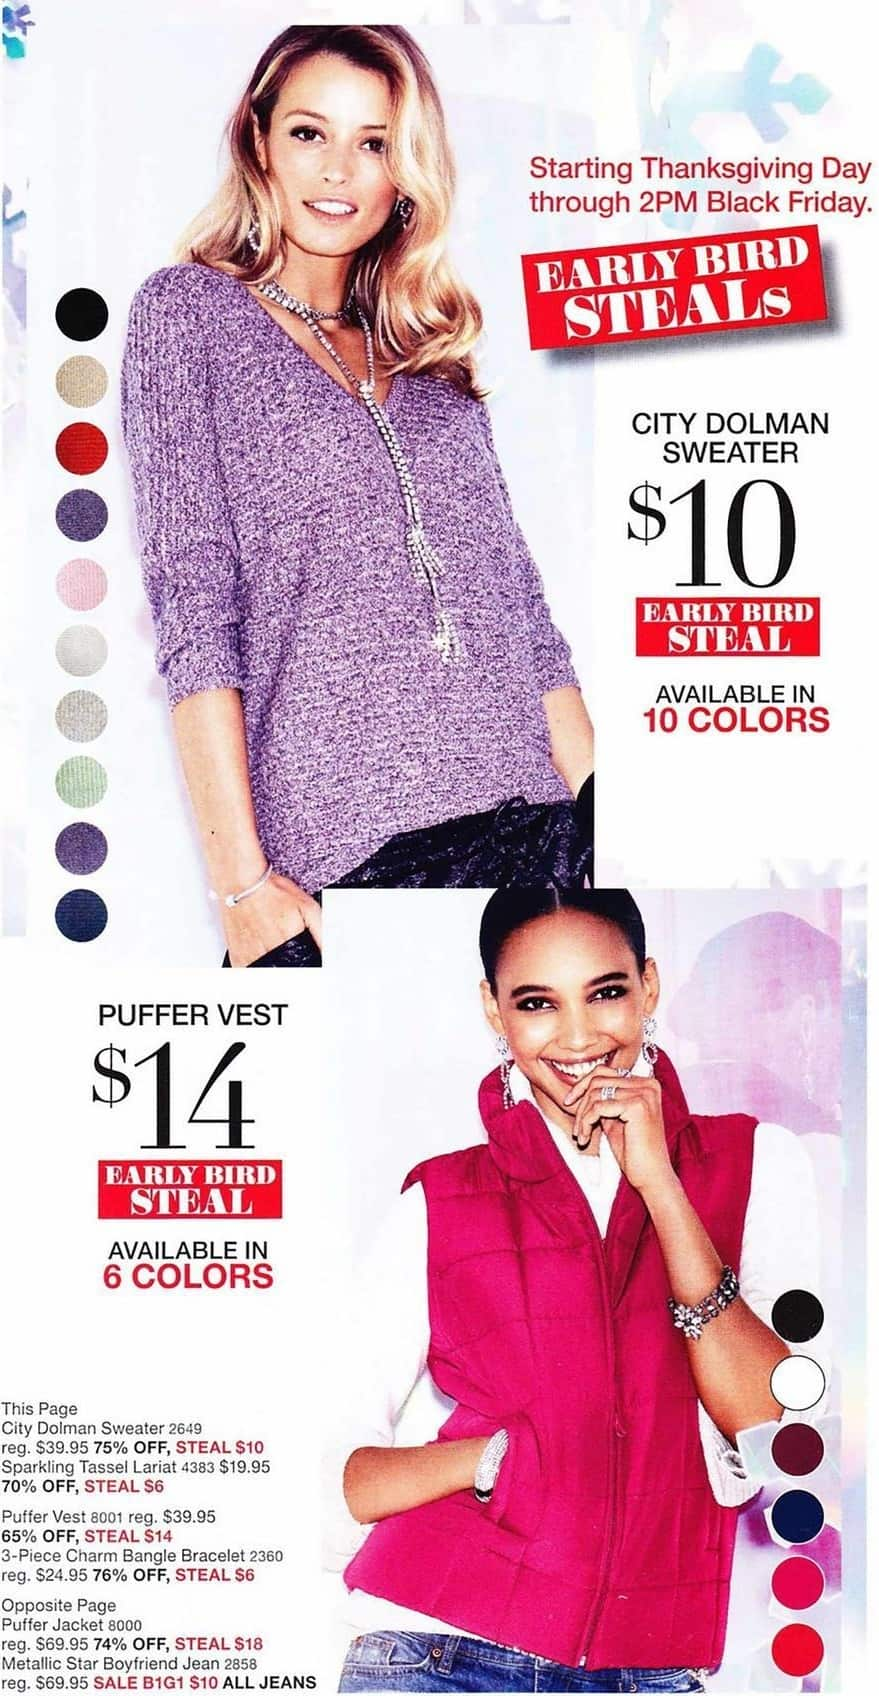 New York and Company Black Friday: Women's City Dolman Sweater for $10.00